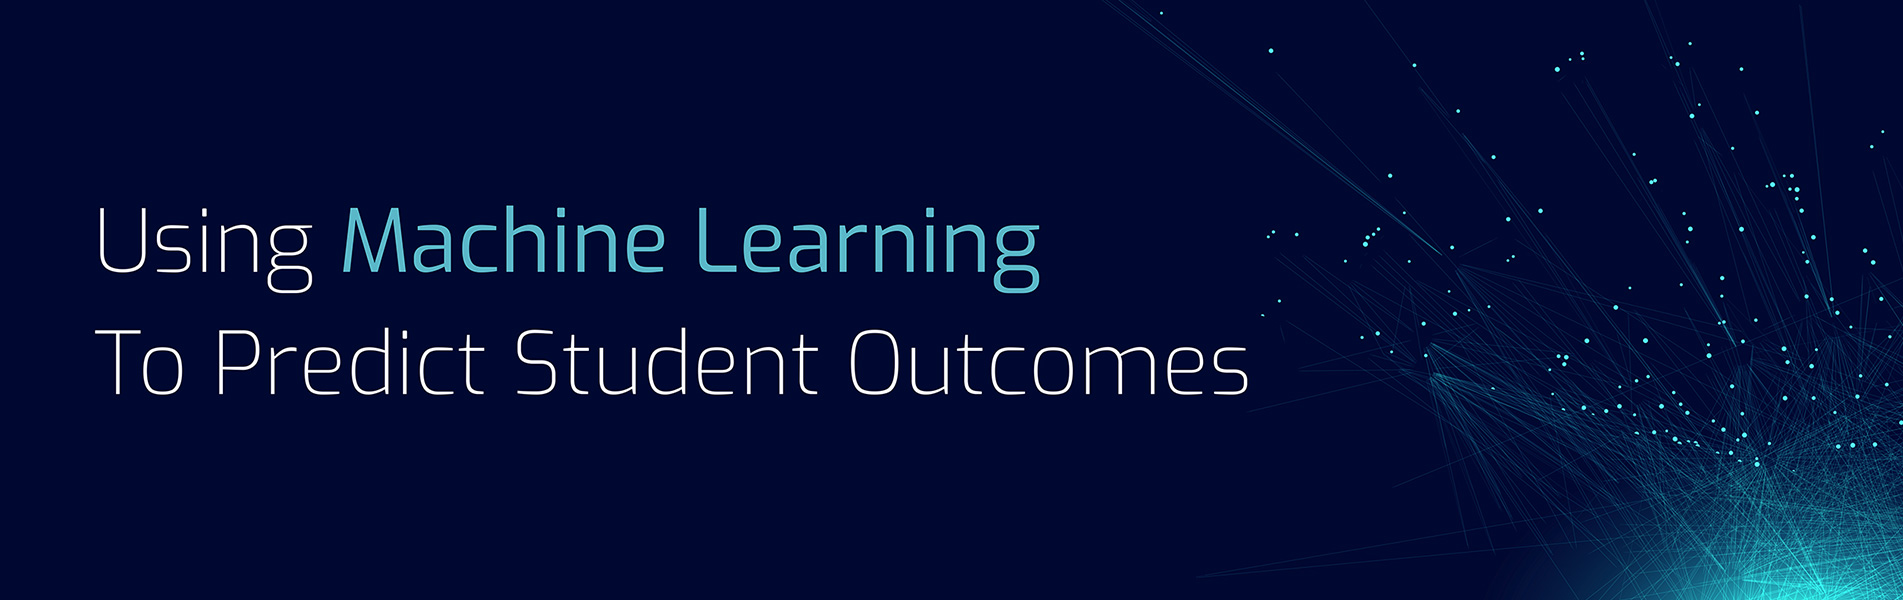 Using-machine-learning-to-predict-student-outcomes